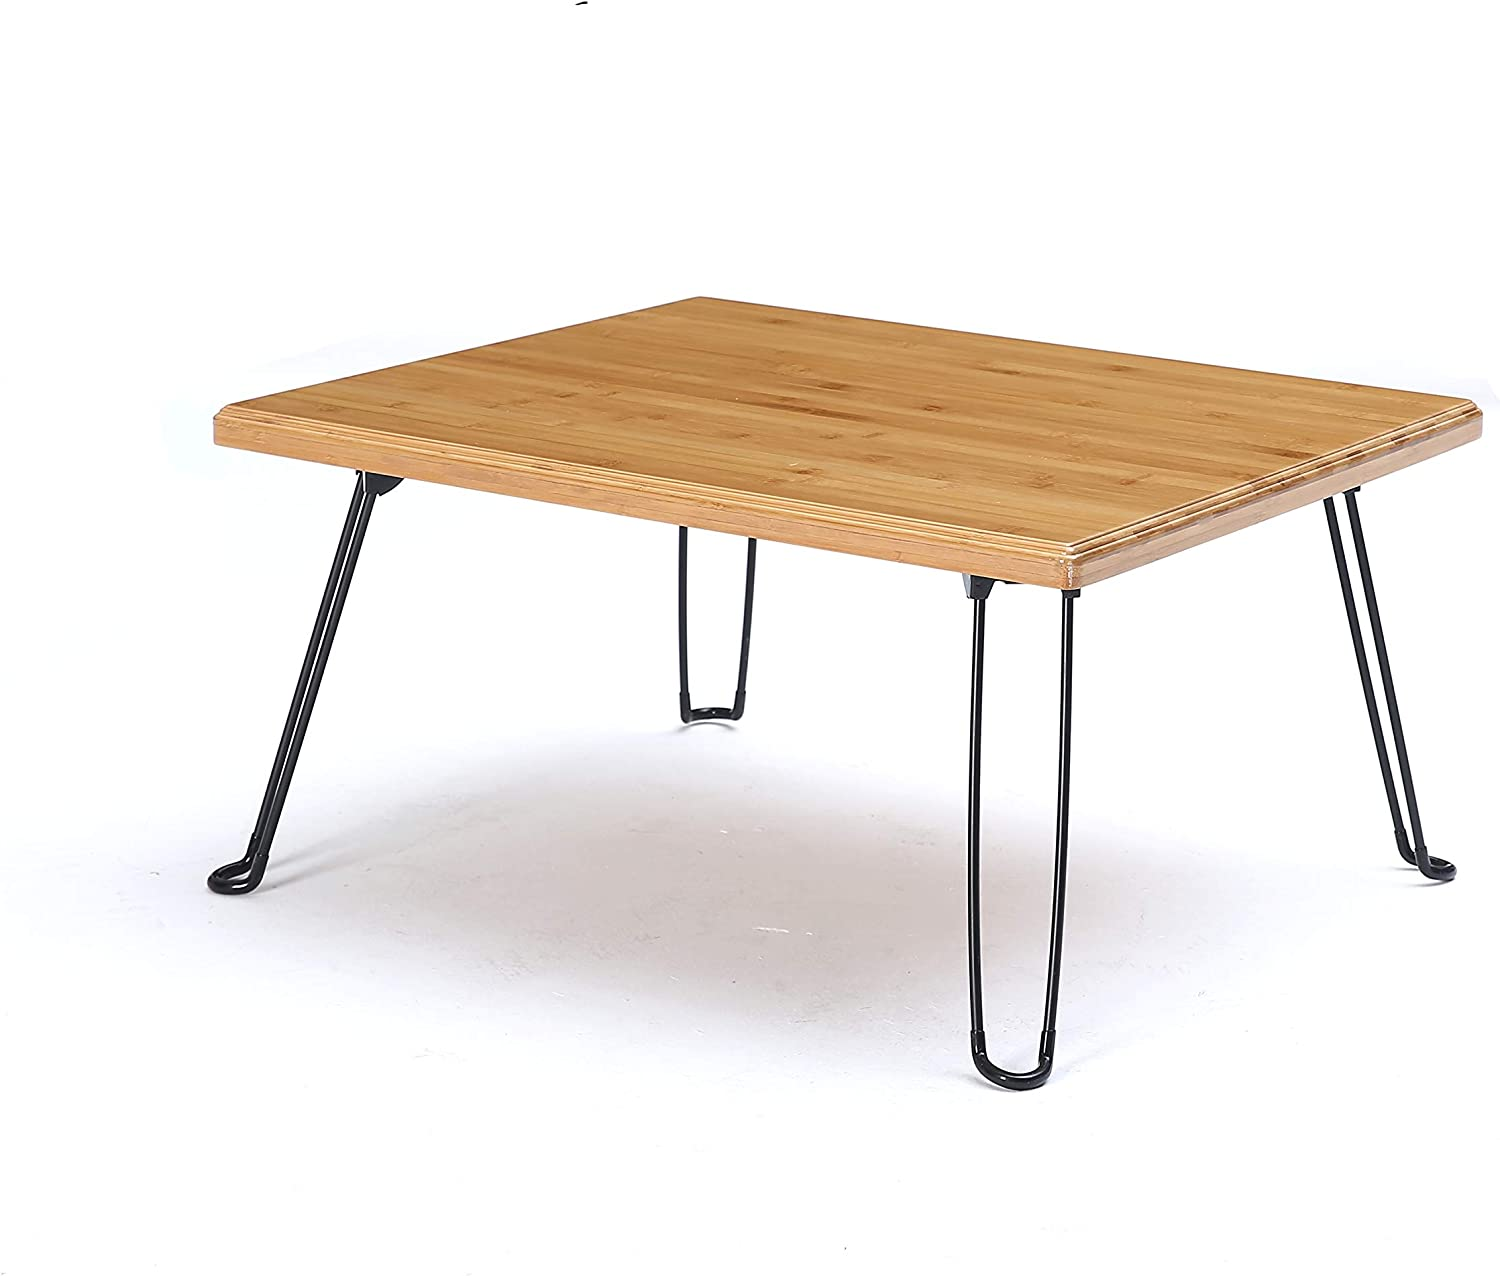 UNICOO Bamboo Wooden Rectangular Folding Table, Folding Coffee Table, Tray Table, Children's Art Craft Study Activity Table, Outdoor Picnic Table with Foldable Hairpin Metal Legs • (Nature)